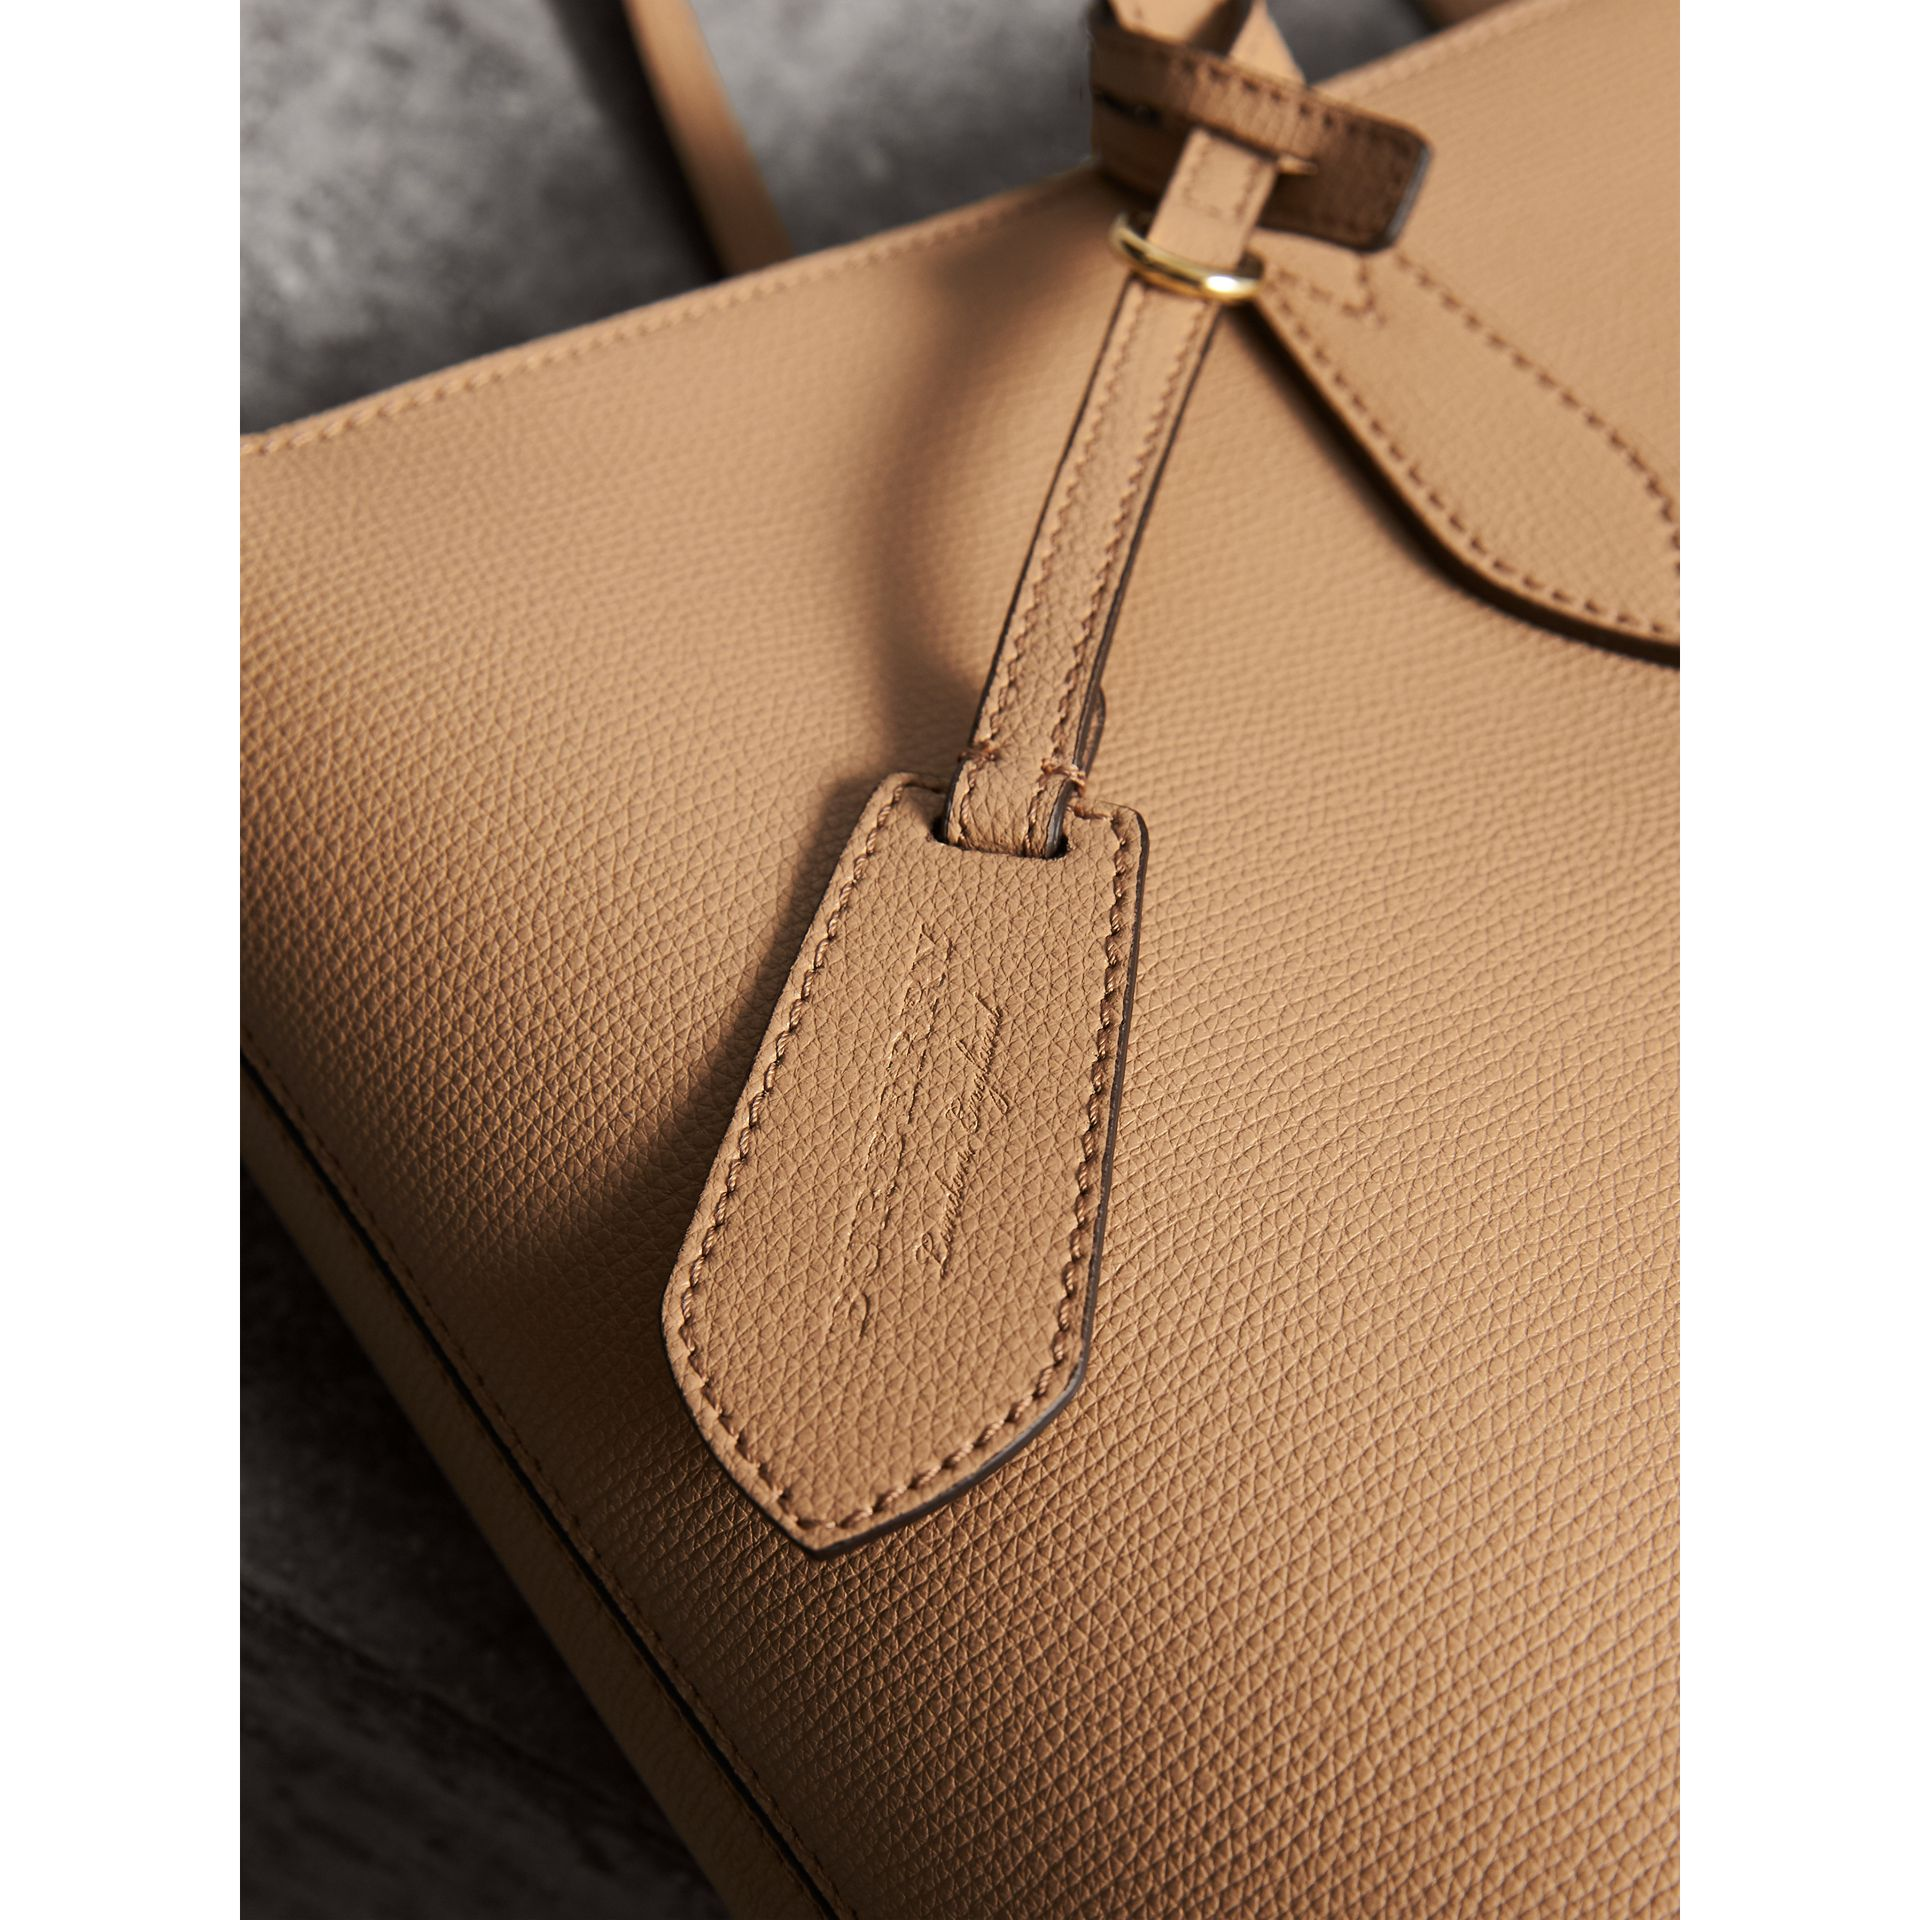 Medium Coated Leather Tote in Mid Camel - Women | Burberry Canada - gallery image 2